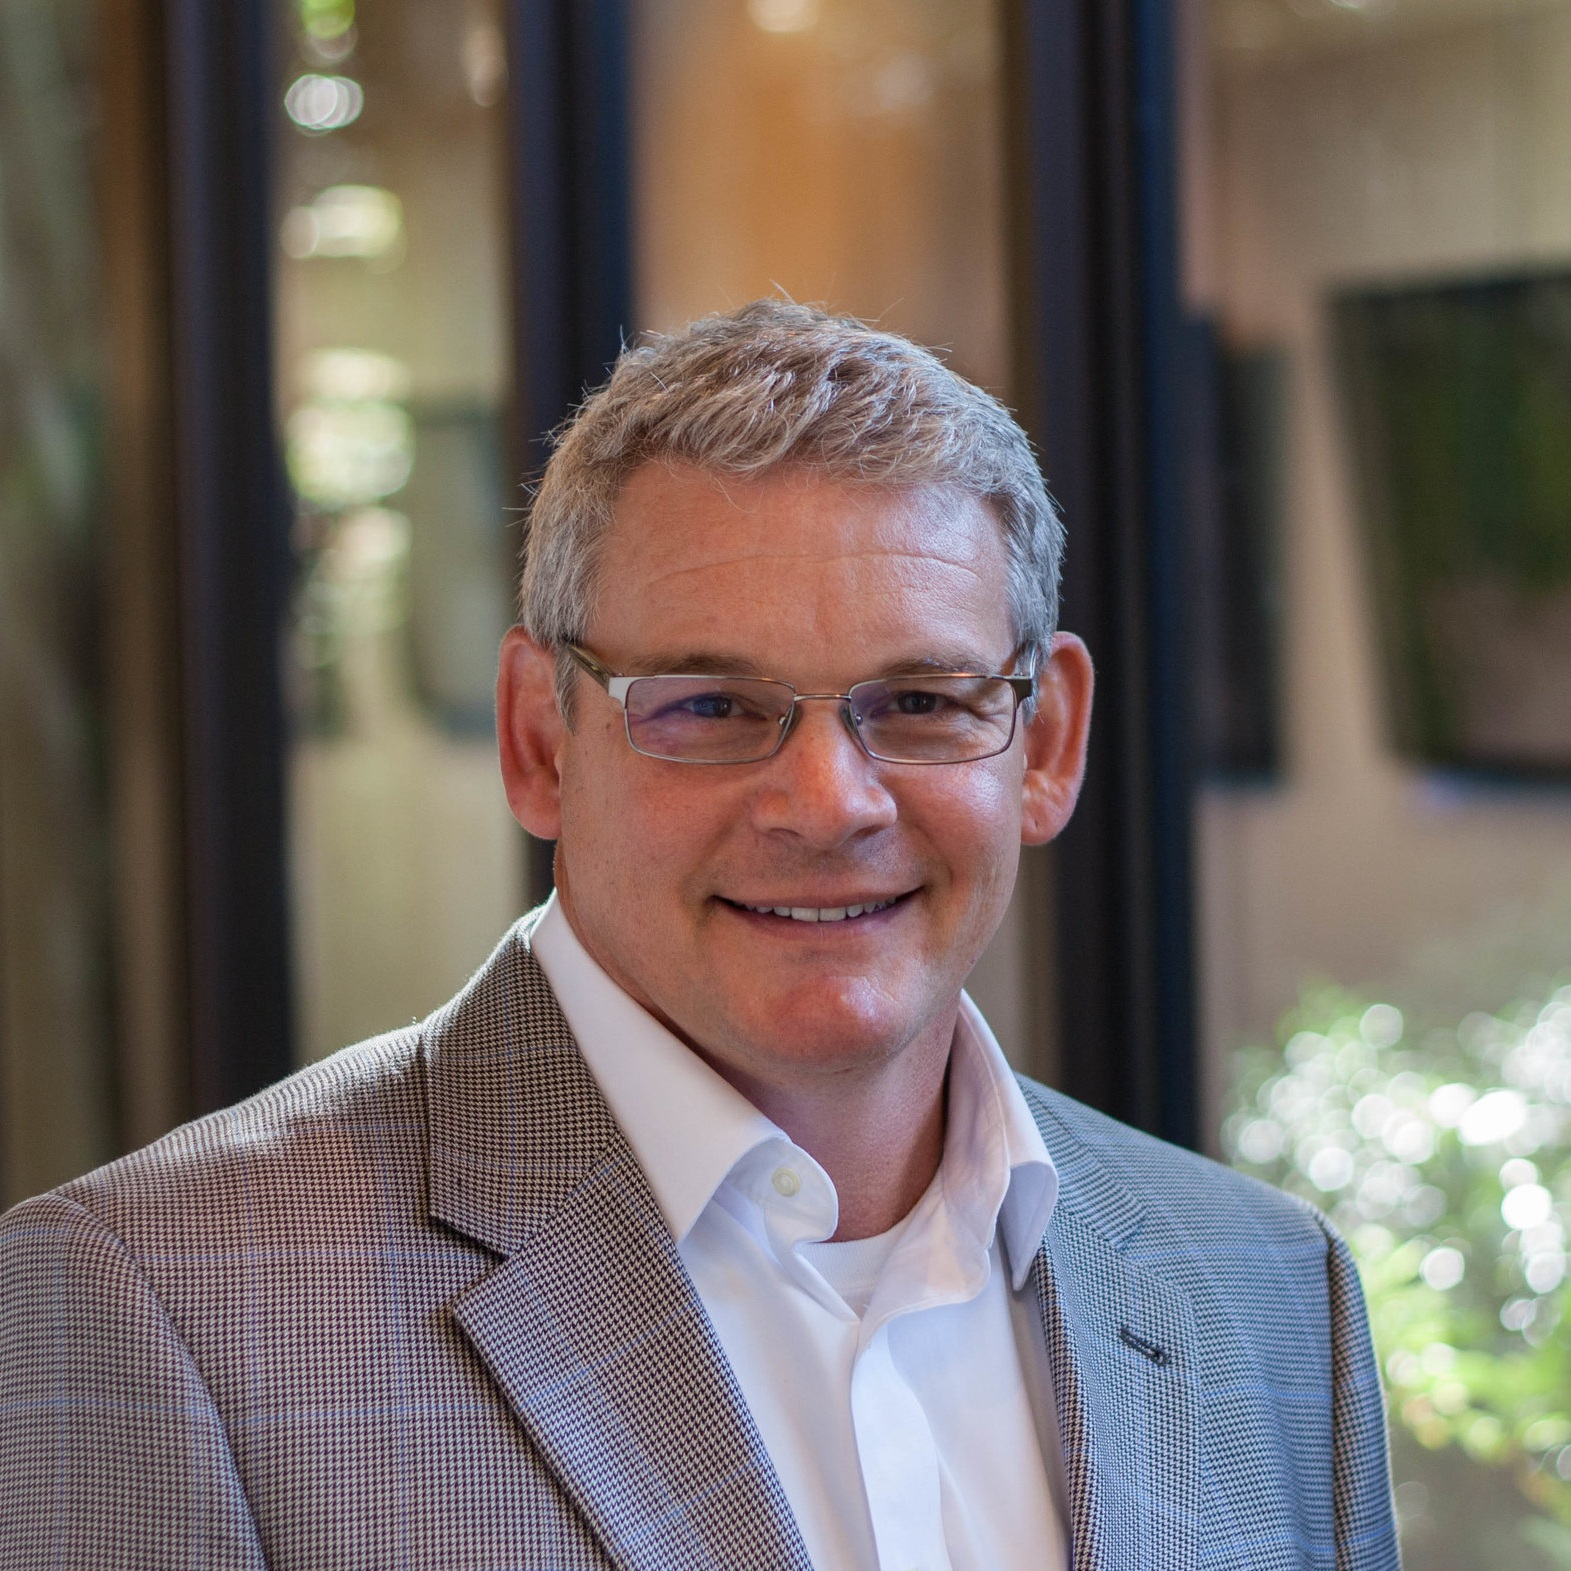 Stewart Smith, AIA, LEED AP - Senior Architect, PrincipalStewart Smith is a Principal and Senior Architect at A2H. In his 30 years of planning and design experience, he has led a wide variety of projects, both domestic and abroad. He offers a diverse portfolio of unique projects within the K-12 education, higher education, healthcare, sports and recreation, and mixed use sectors. Stewart specializes in working with clients to define their brand aesthetic through architectural detail.